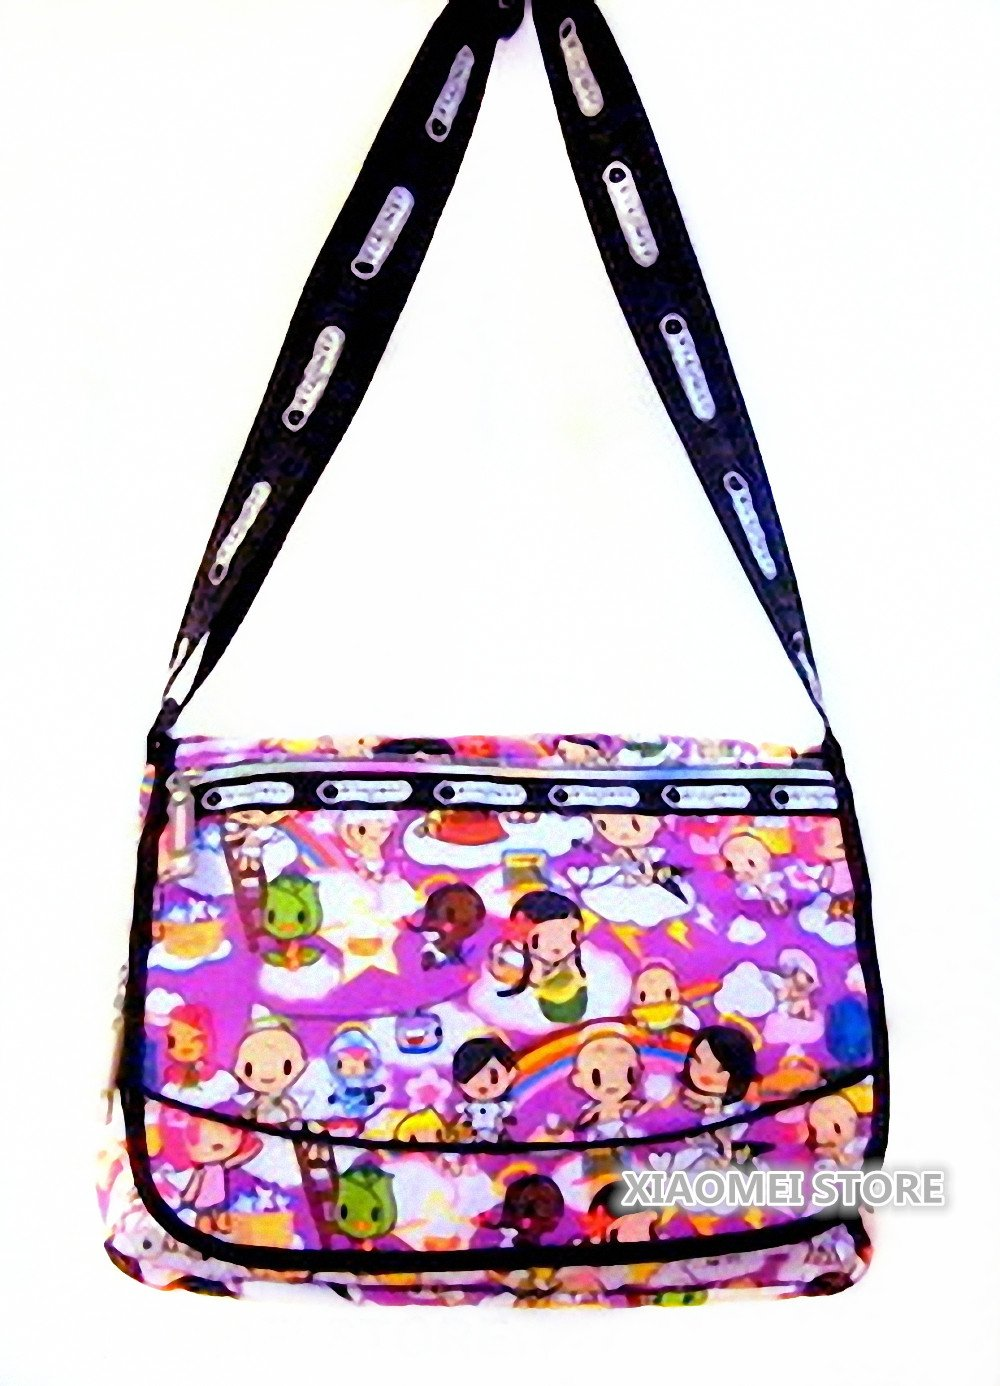 f952f29726c9 XIAOMEI Colourful Cartoon Girl s A4 Messenger Style Bag 825Z - for School  or College Etc  Amazon.co.uk  Sports   Outdoors